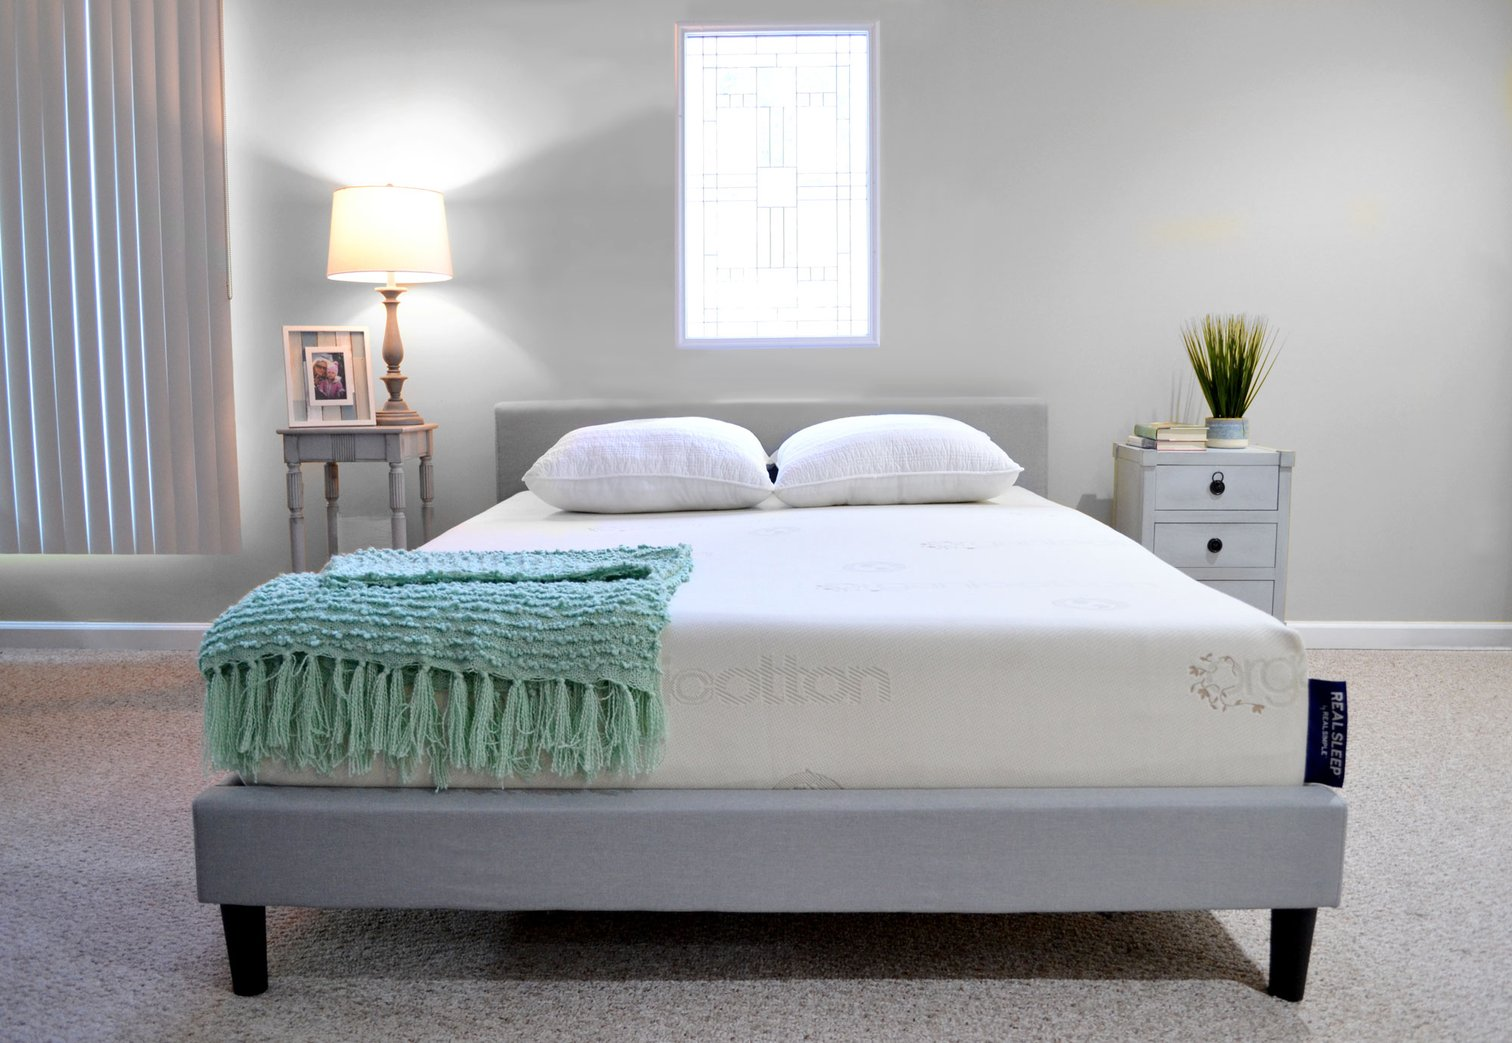 Real Simple has a mattress line, and it's so good it's probably saving my marriage